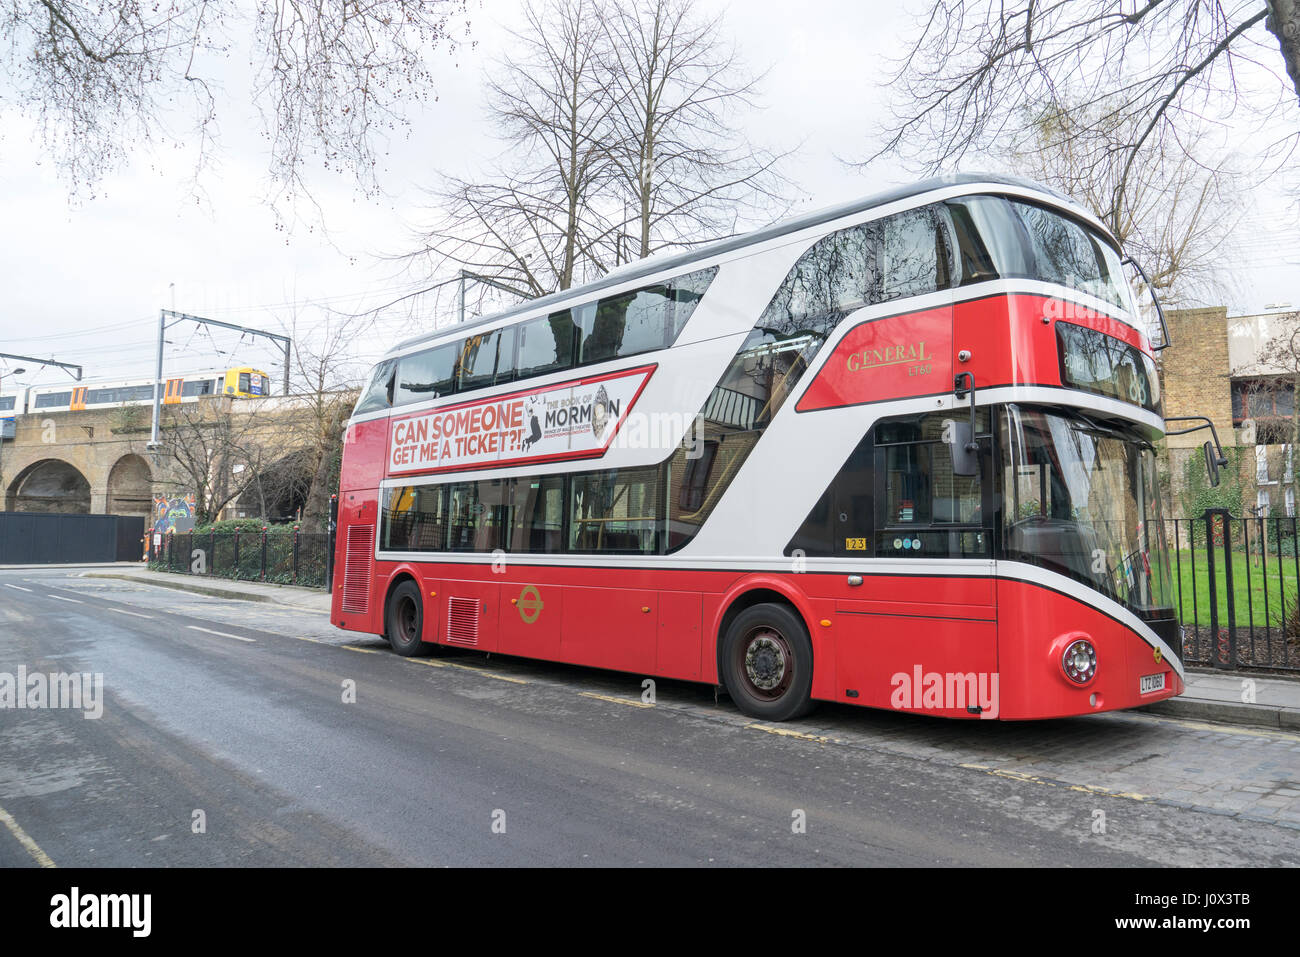 London new Routemaster bus in 1855 London General livery parked in Camden Town in the background in an Overground - Stock Image